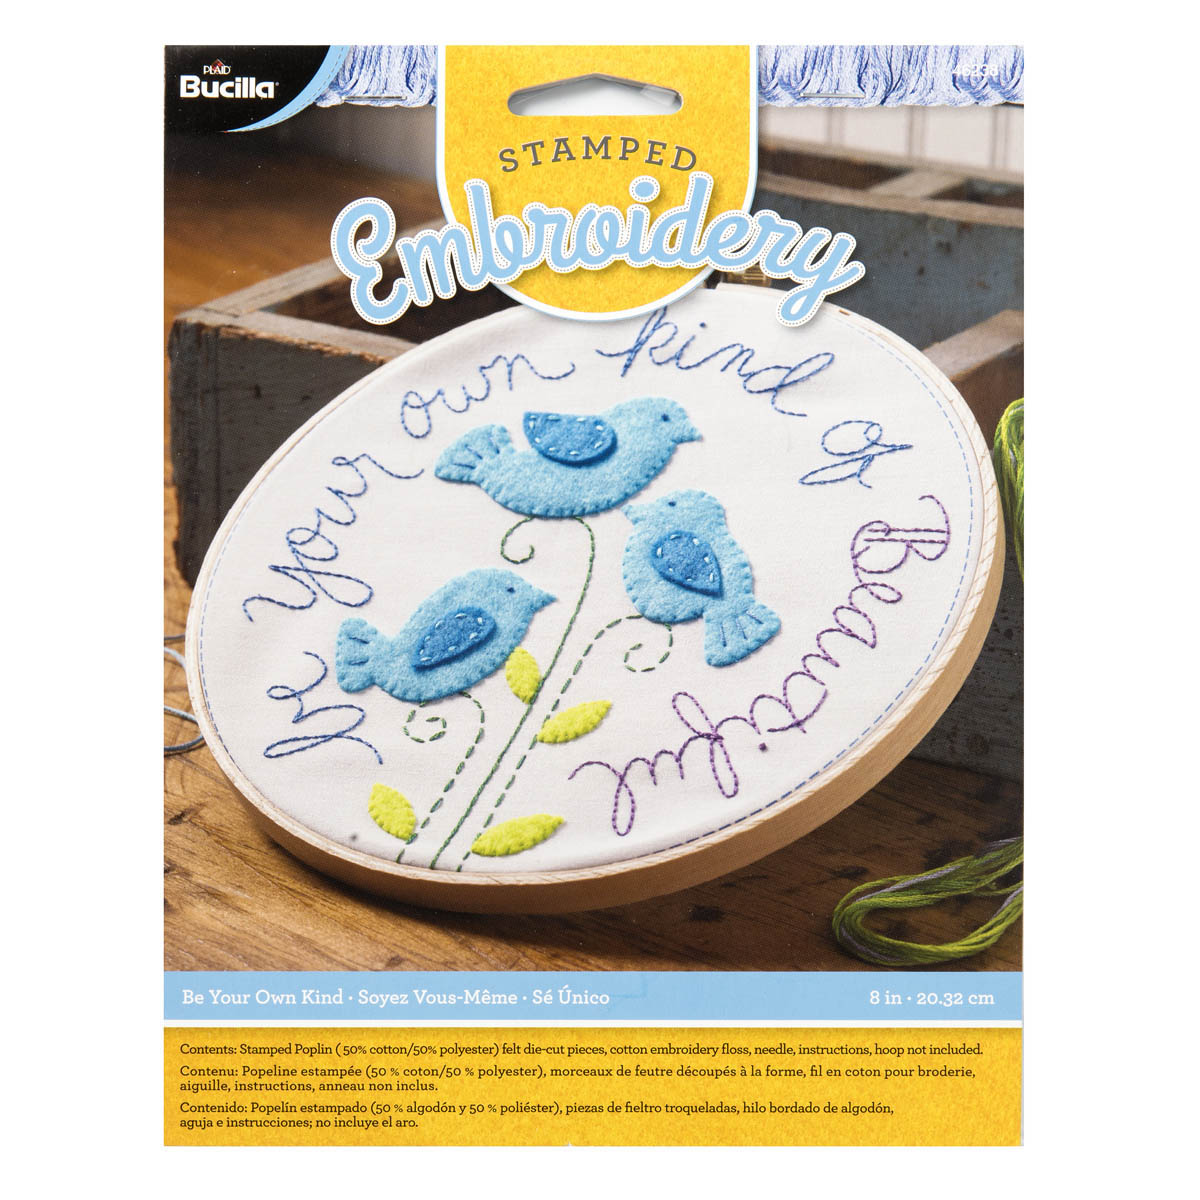 Bucilla ® Stamped Embroidery - Be Your Own Kind